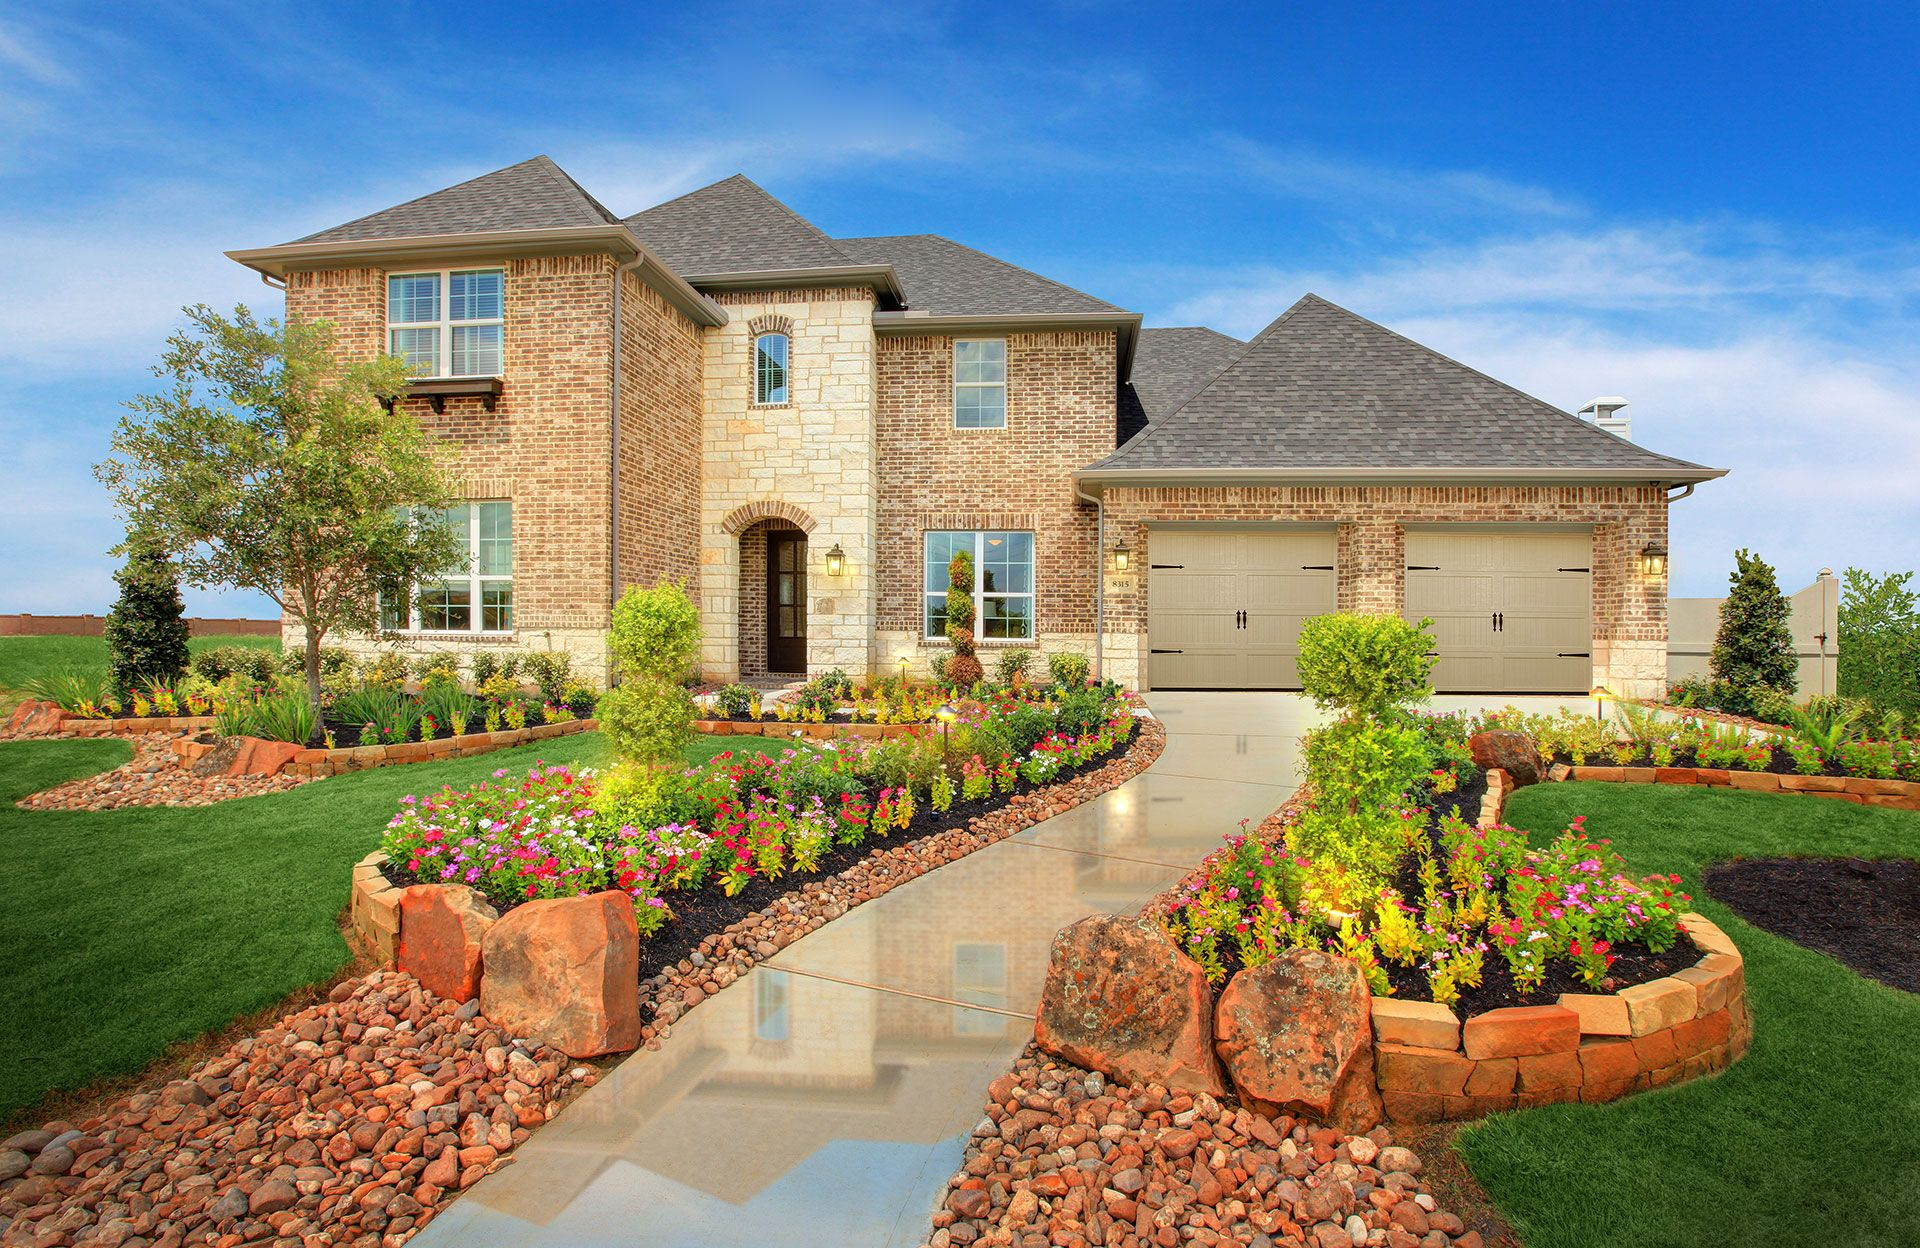 Single Family for Sale at Colton 323 Summer Crescent Drive Rosenberg, Texas 77469 United States